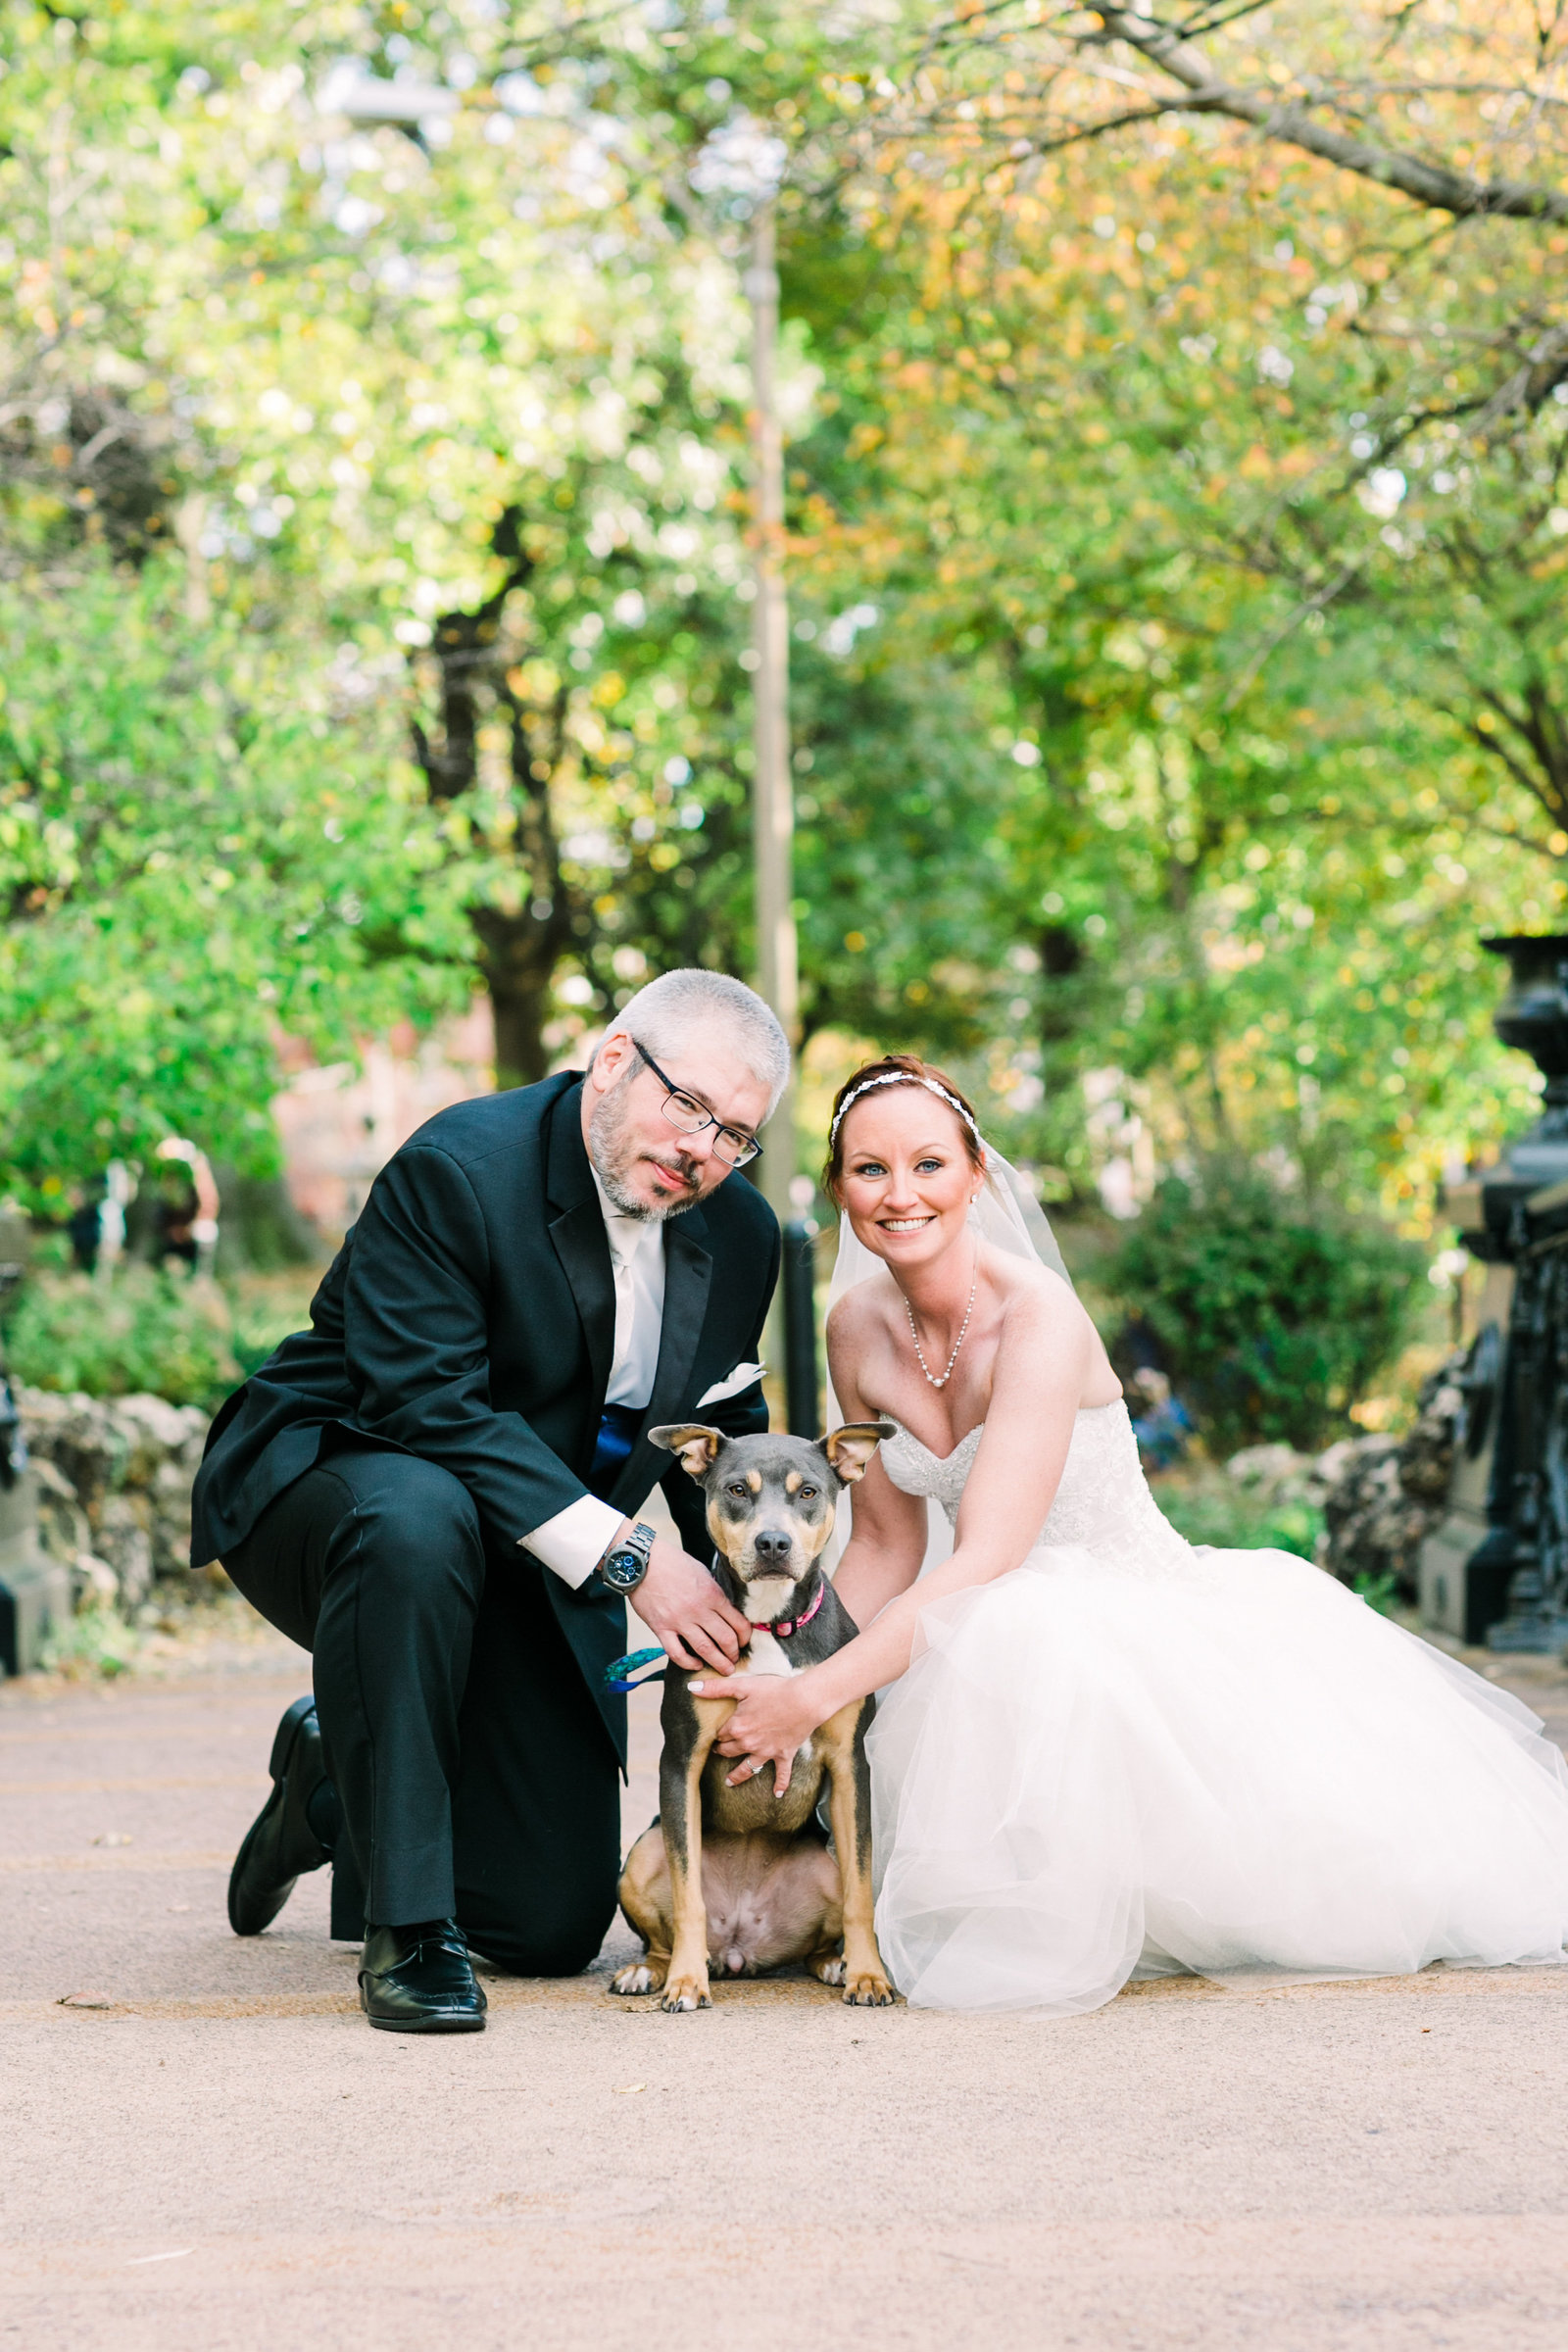 Bride and Groom, Sarah and Chris, pose with their dog, Dadney a pitbull mix, on a bride in Lafayette Park by Jackelynn Noel Photography